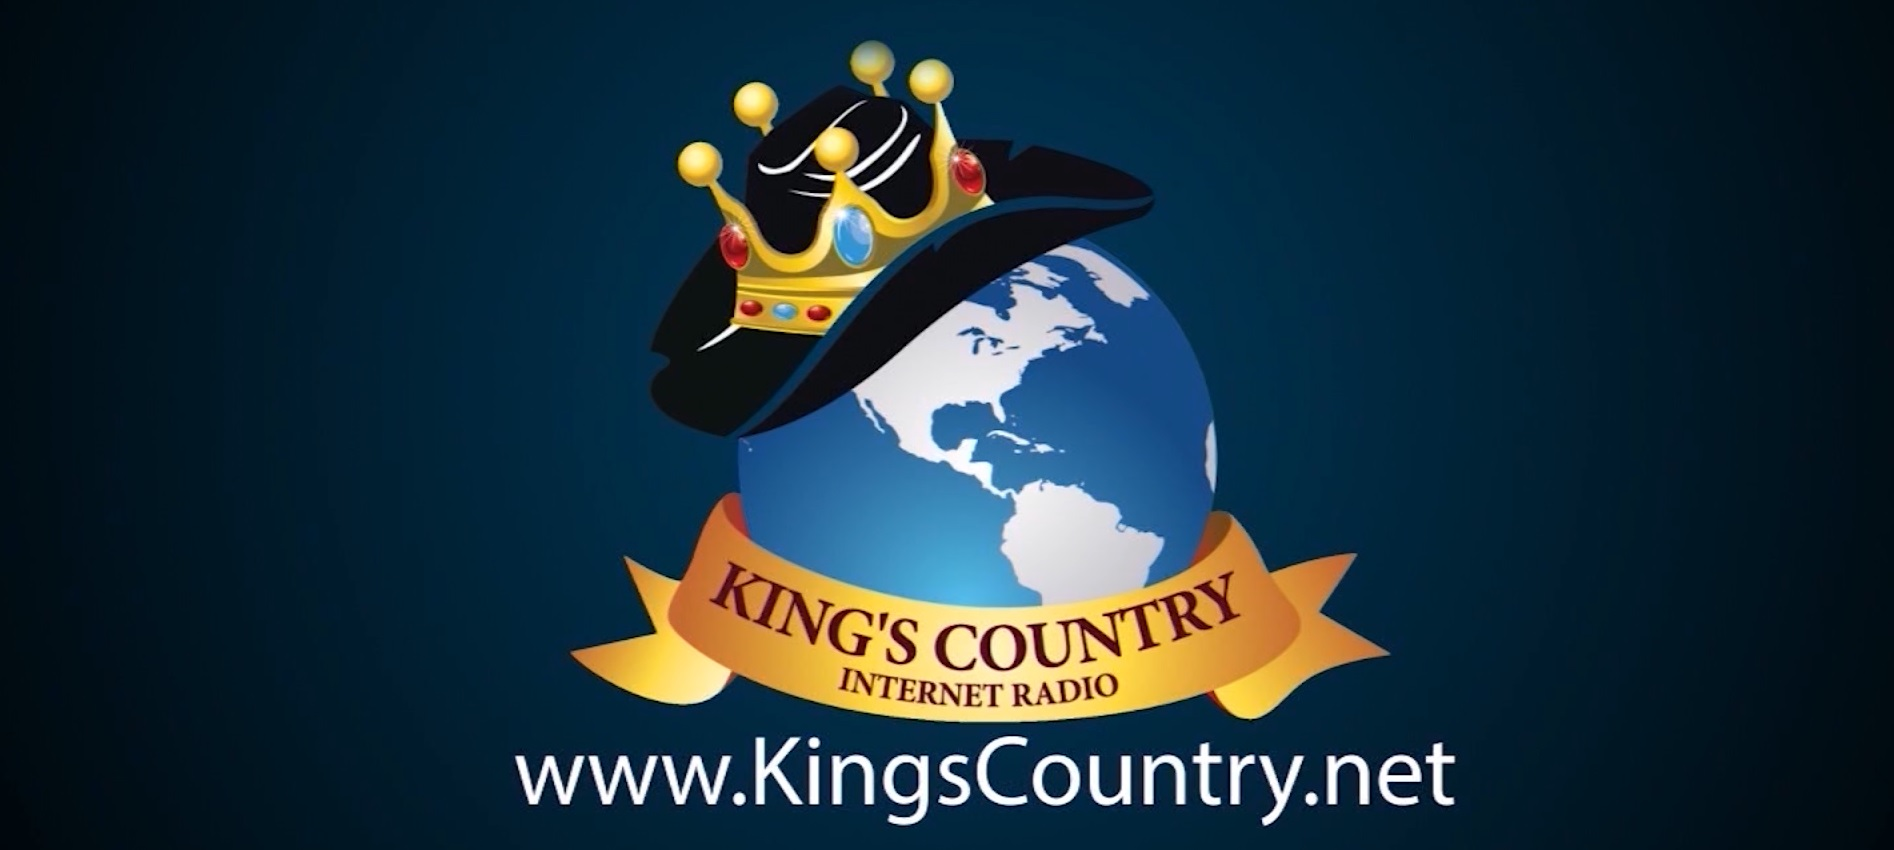 King's Country logo